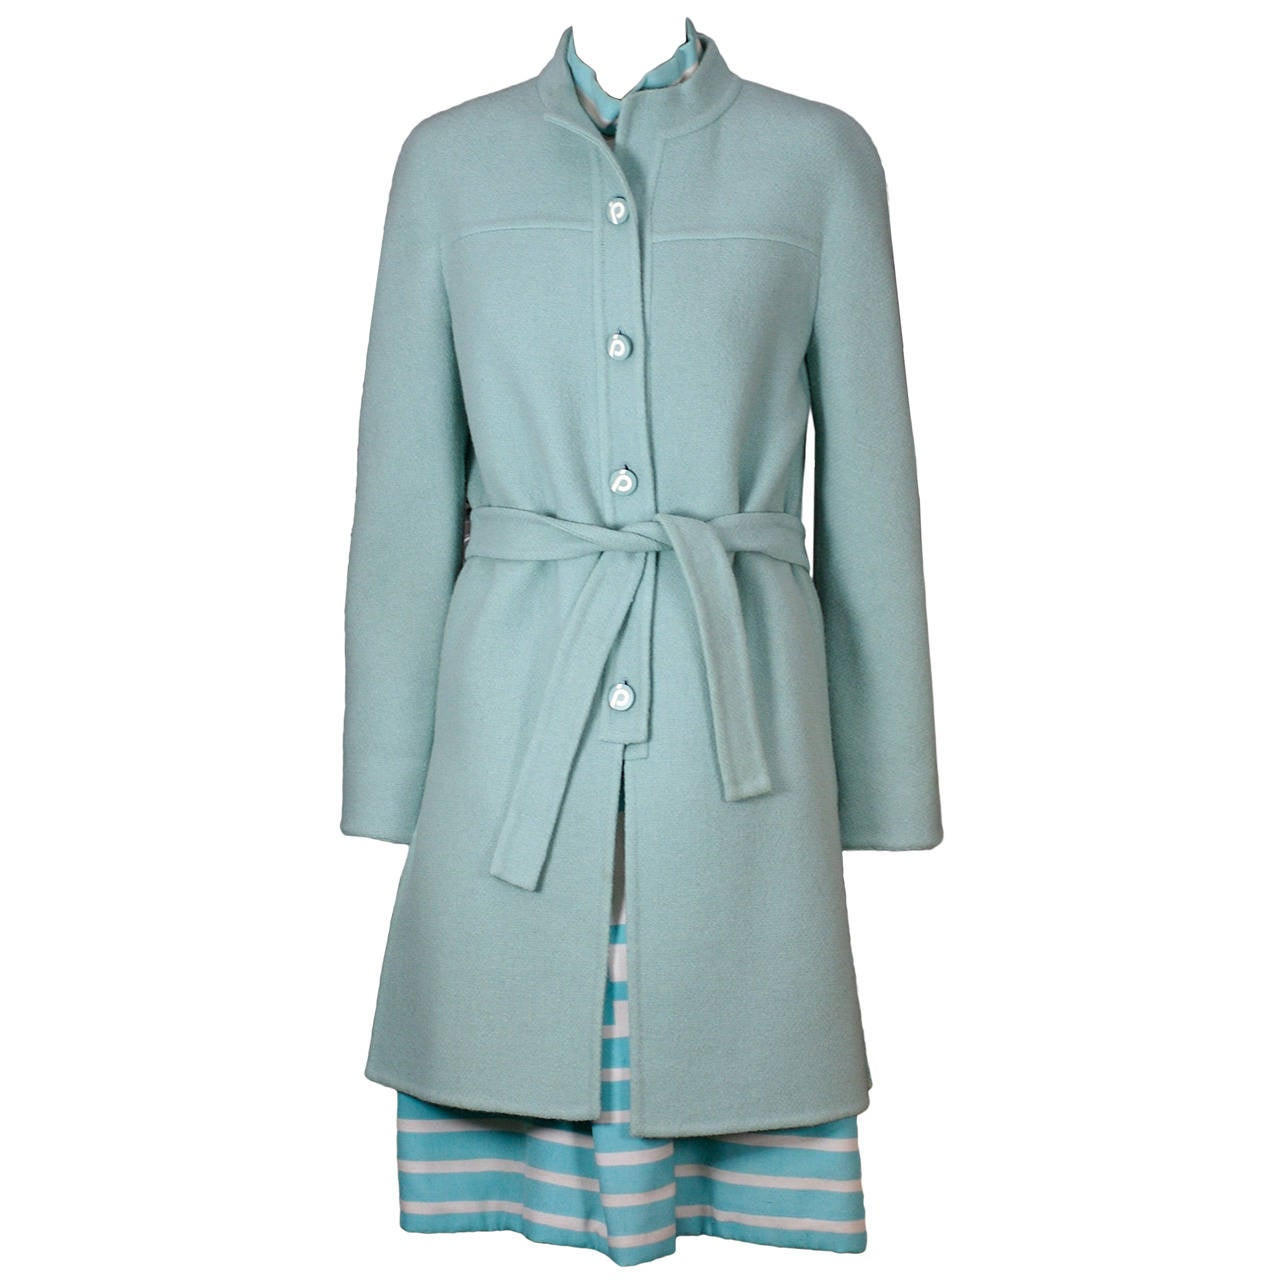 Jean Patou by Karl Lagerfeld Coat and Dress Ensemble